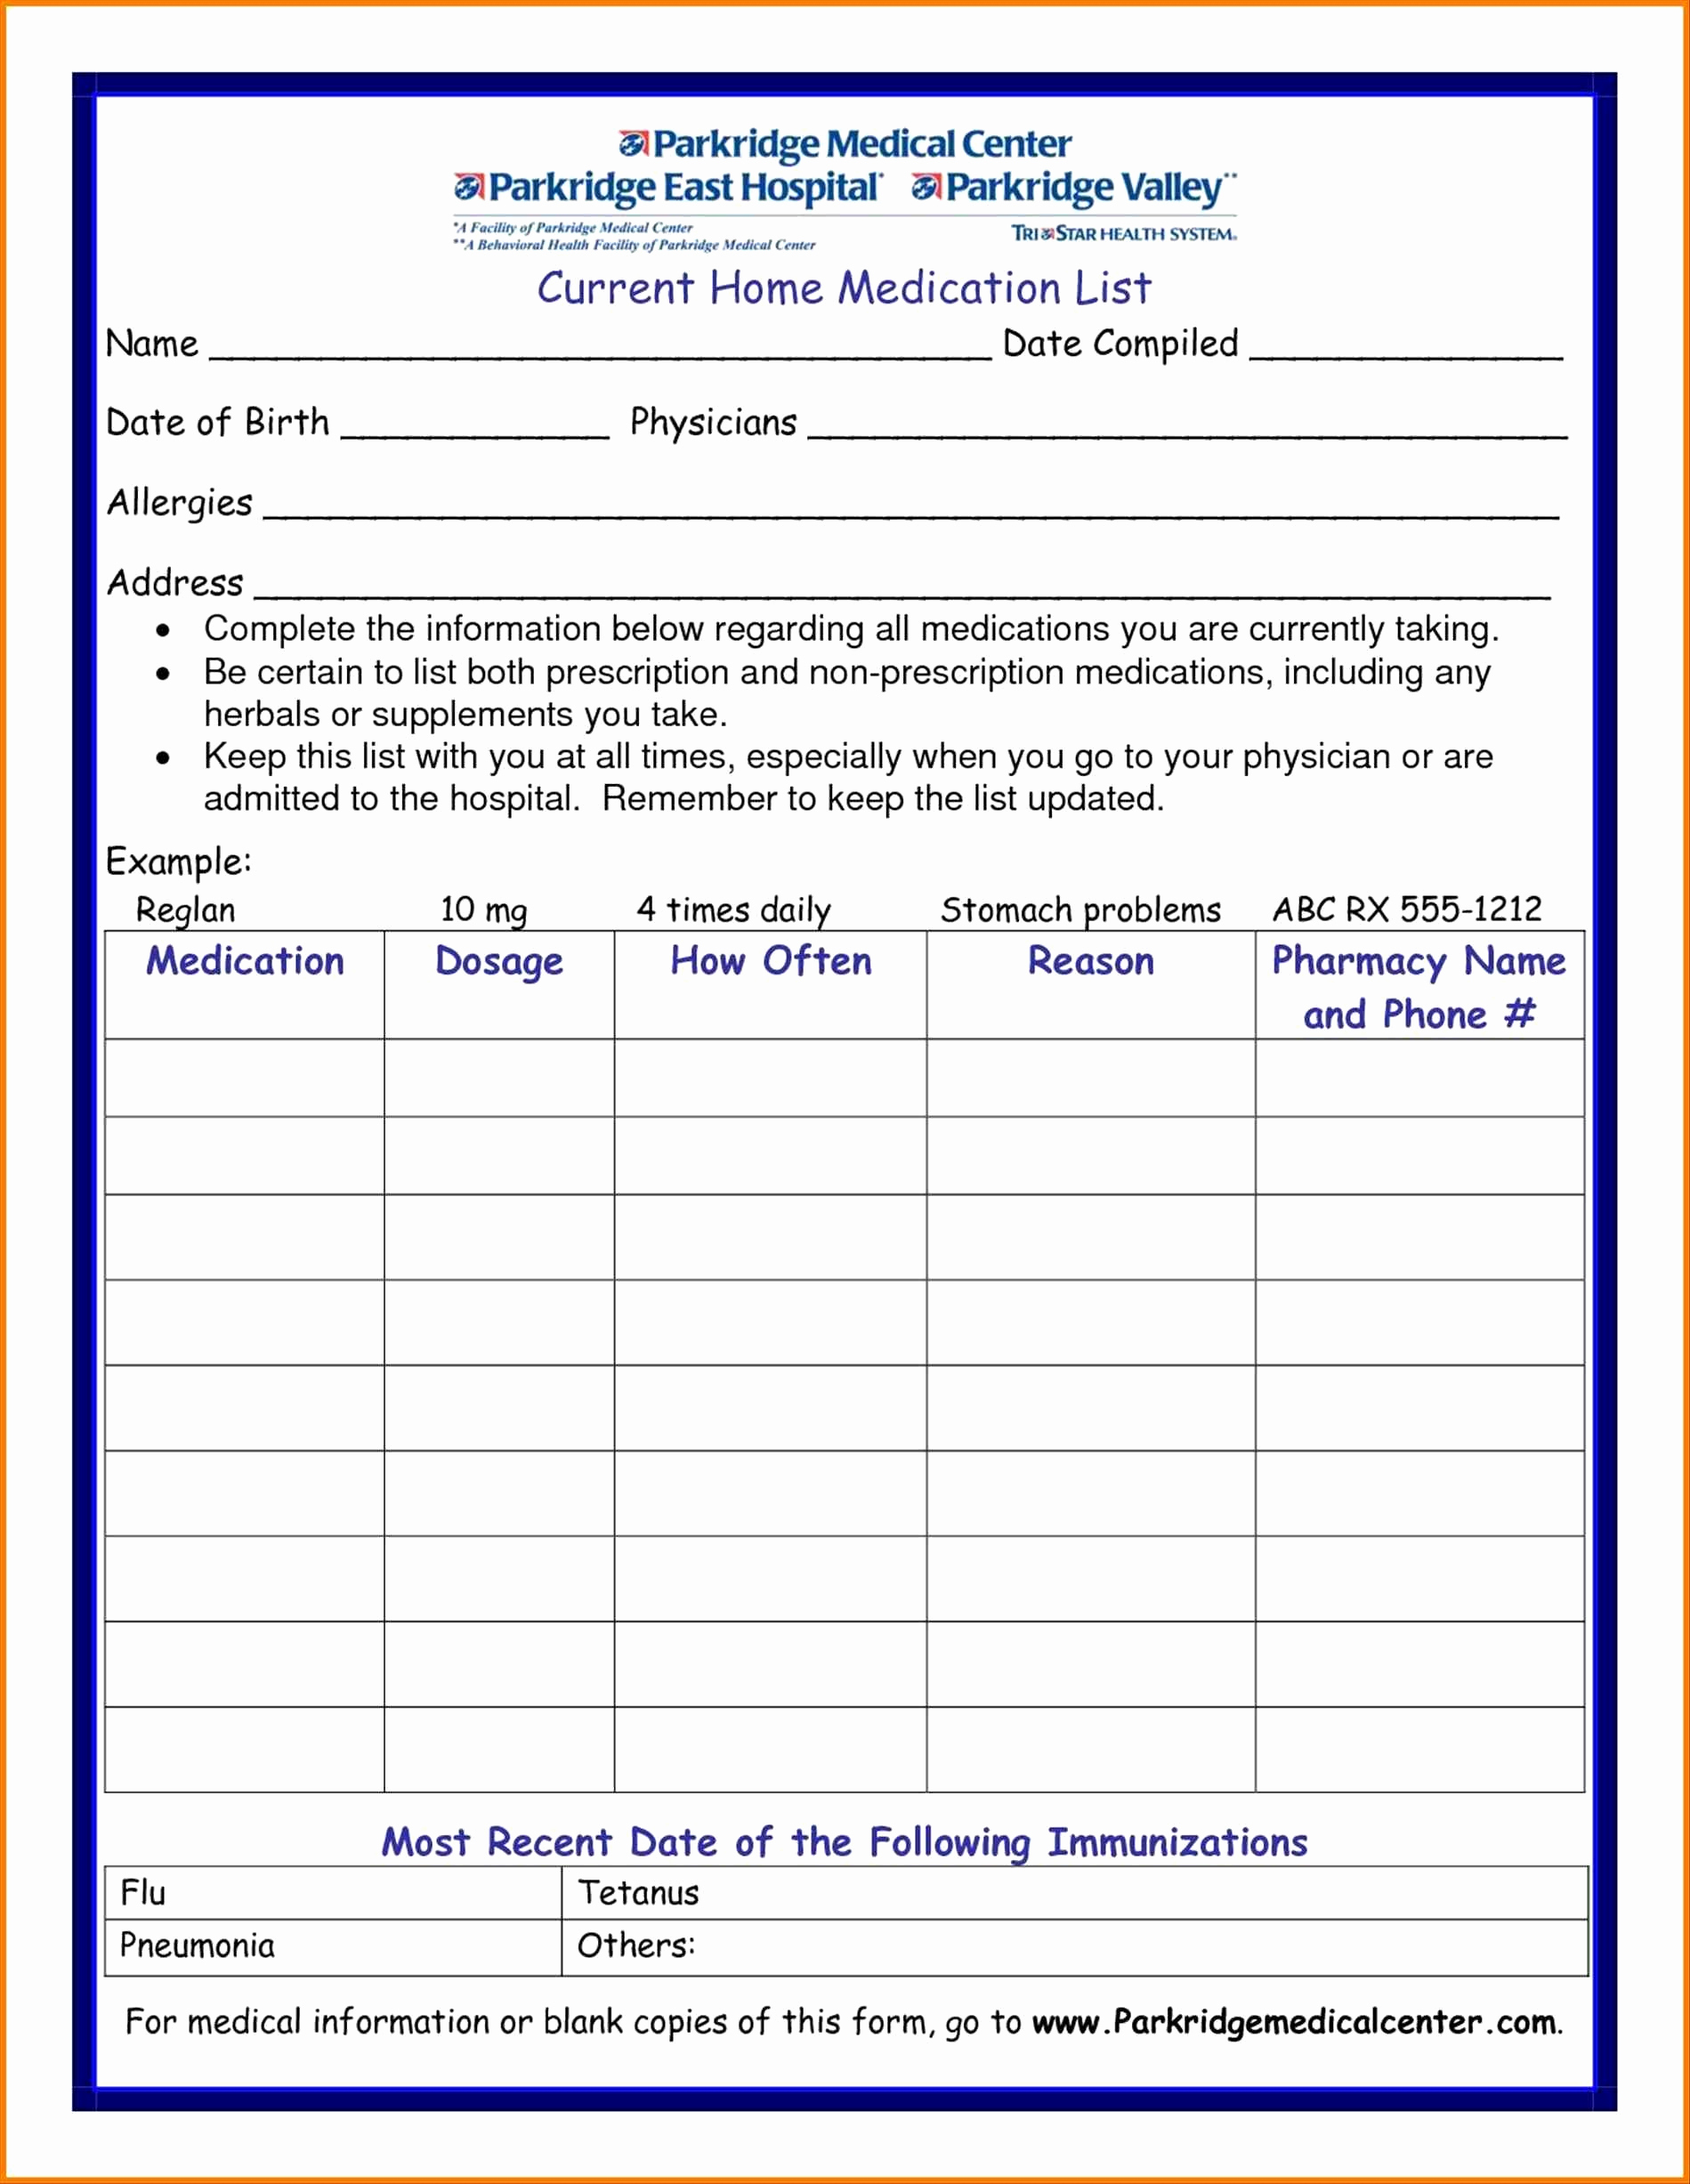 016 Free Medication List Template Resume Awesome Image Of Personal - Free Printable Medication List Template